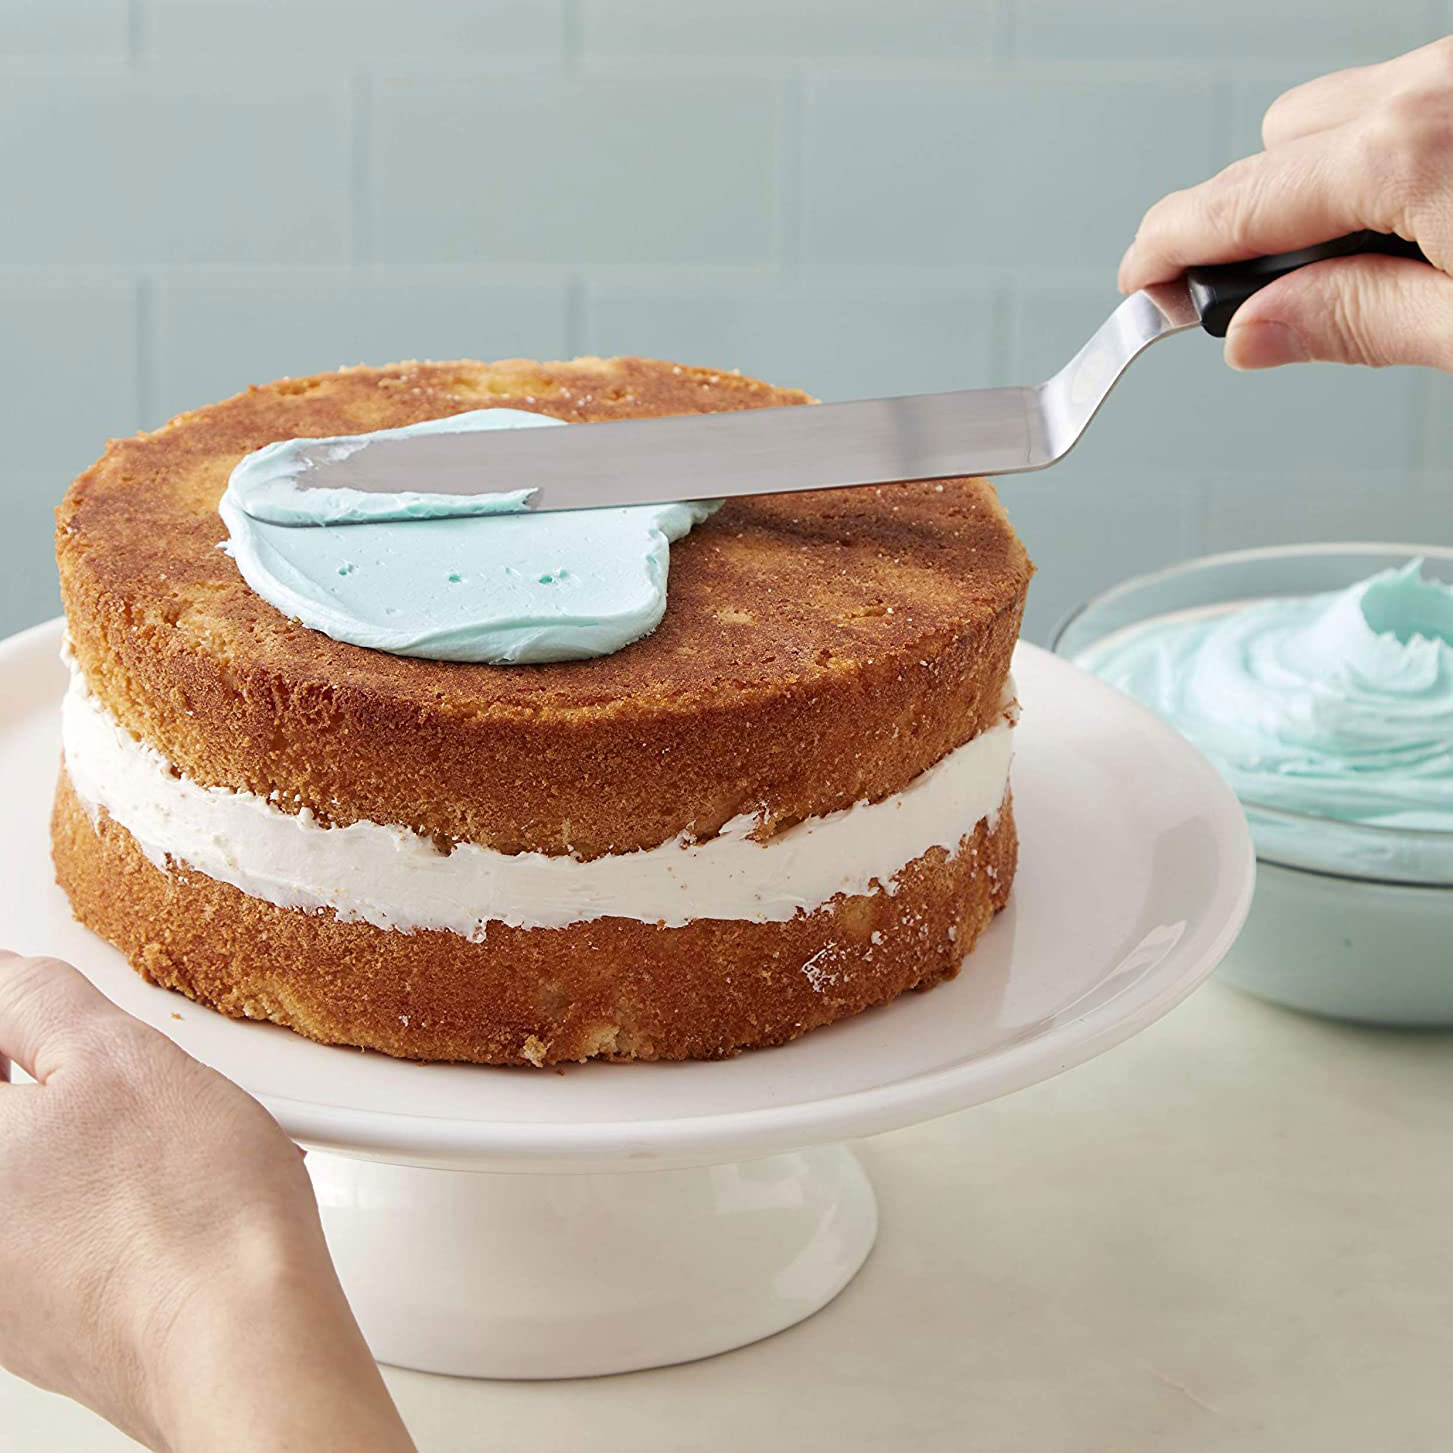 person frosting cake on cake stand using wilton angled spatula